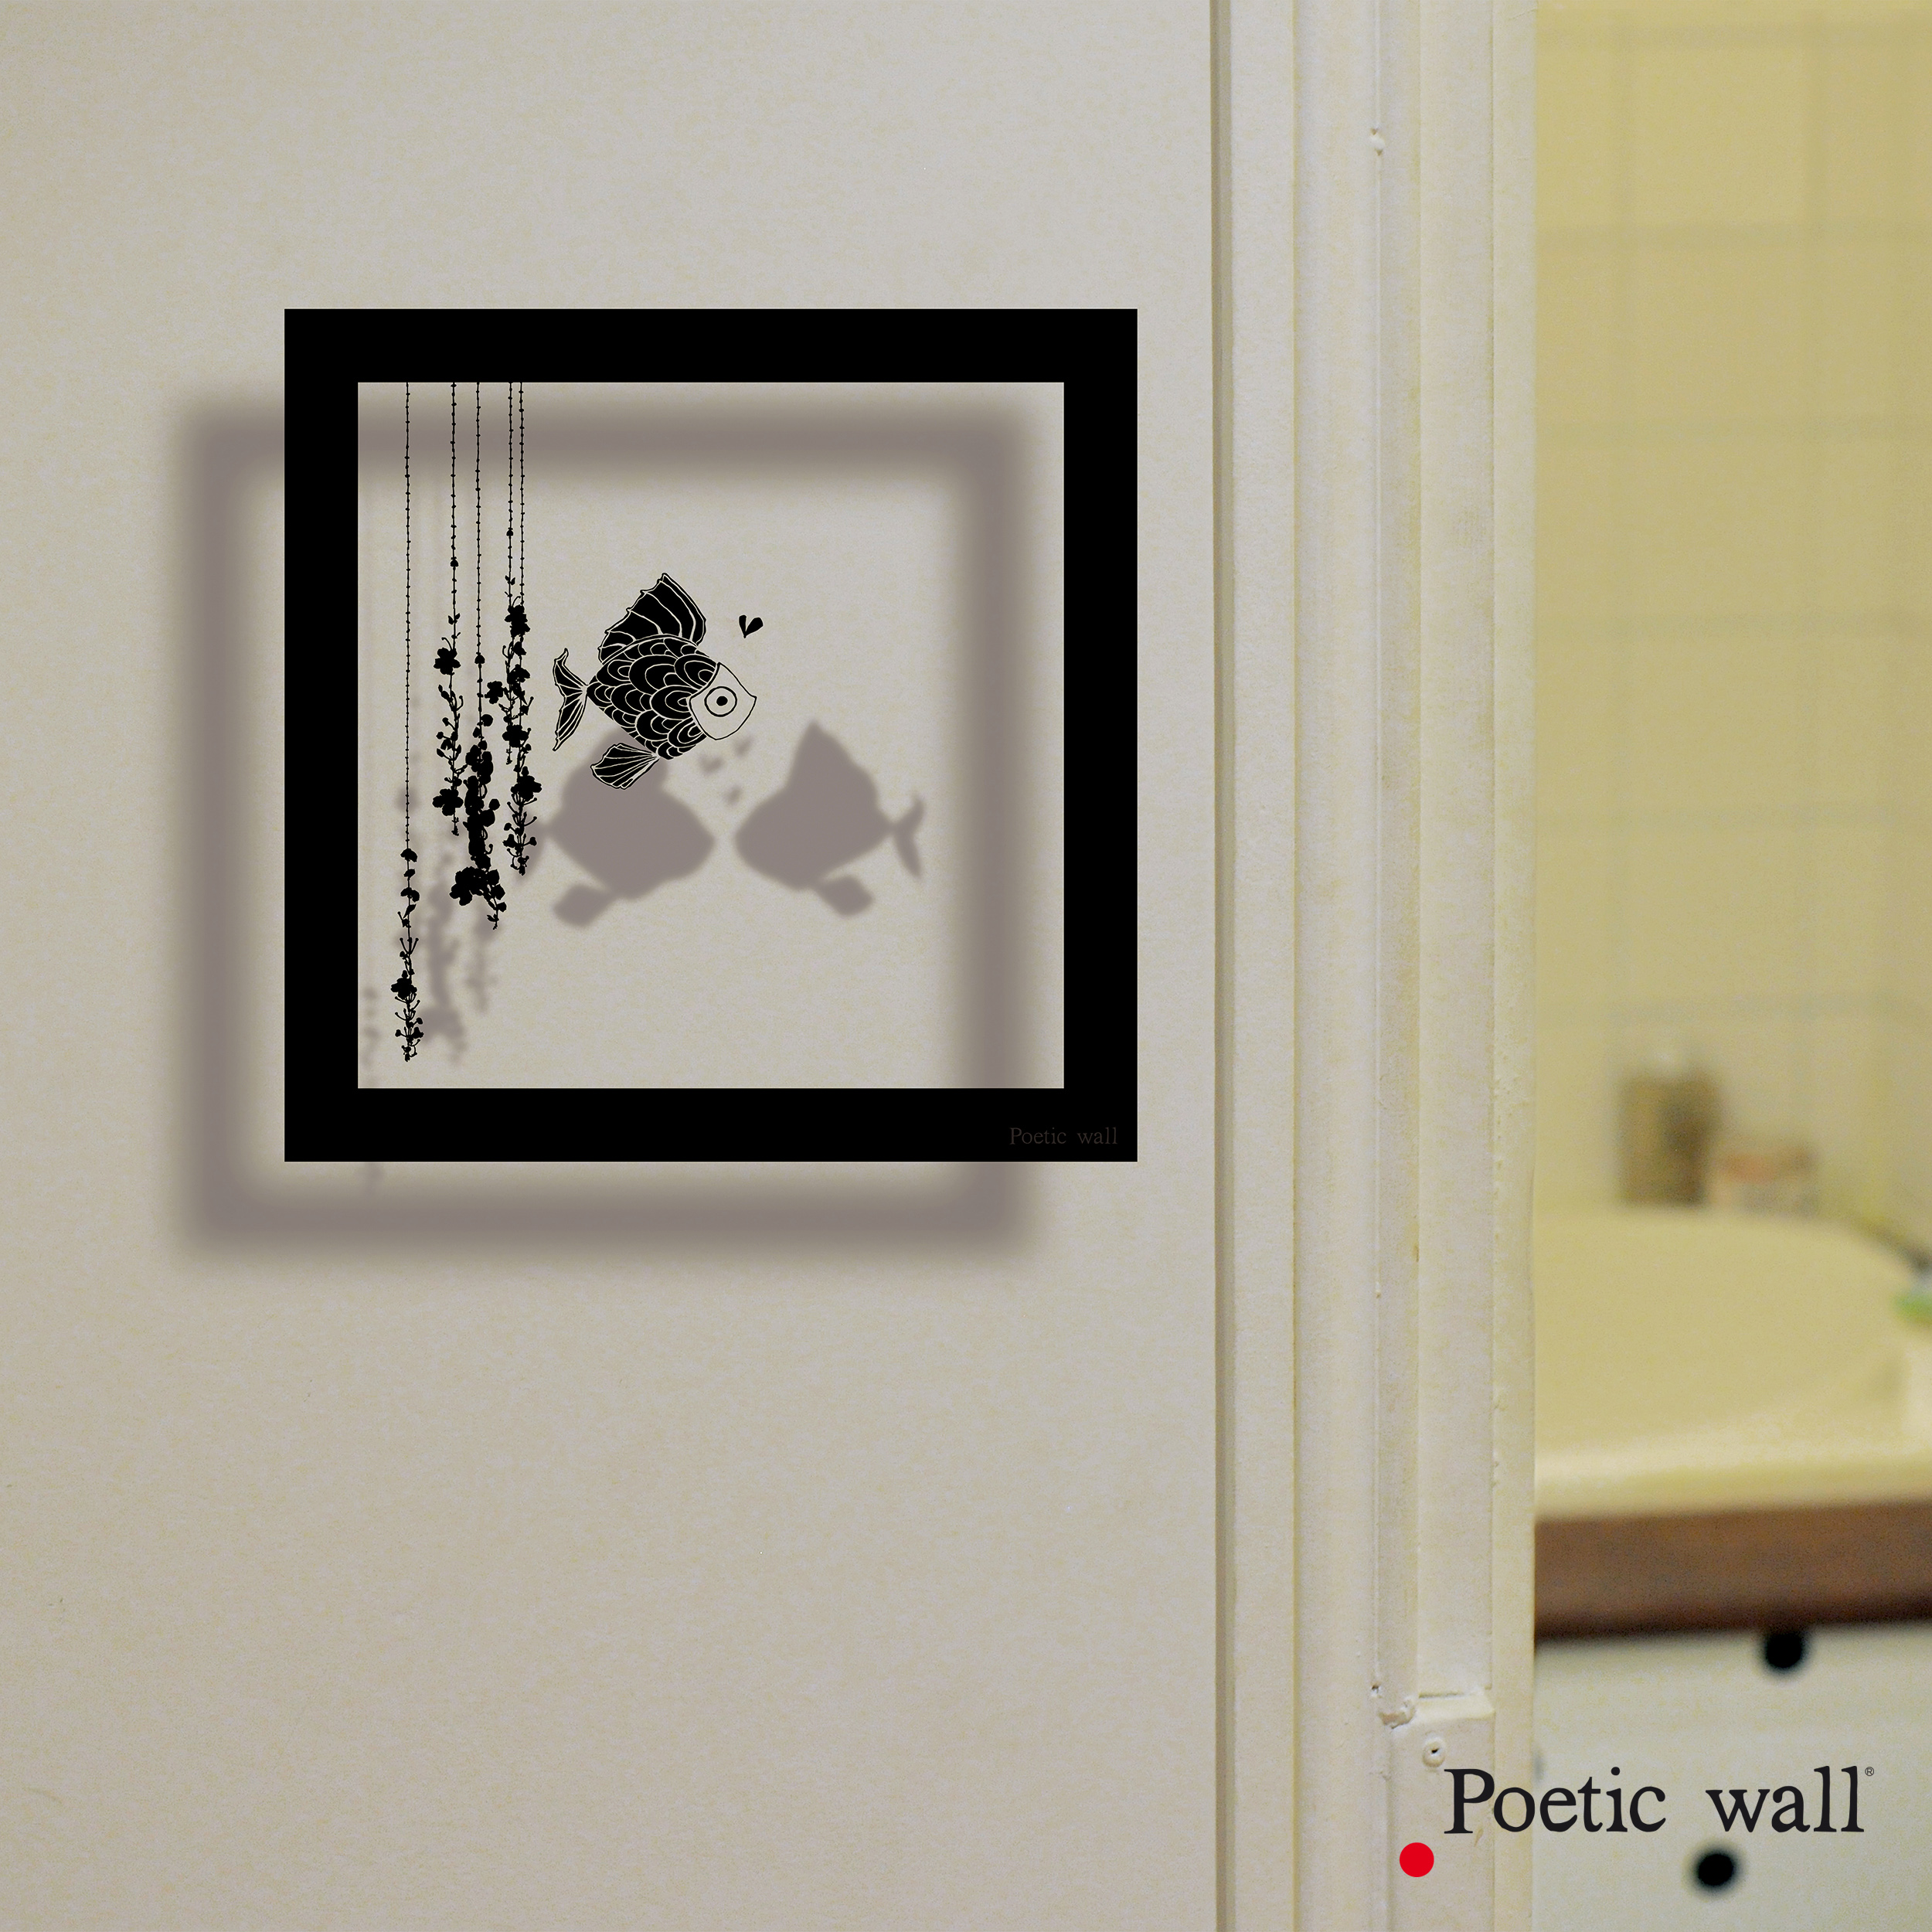 poeticwall-sticker-cadre-ombre-poisson